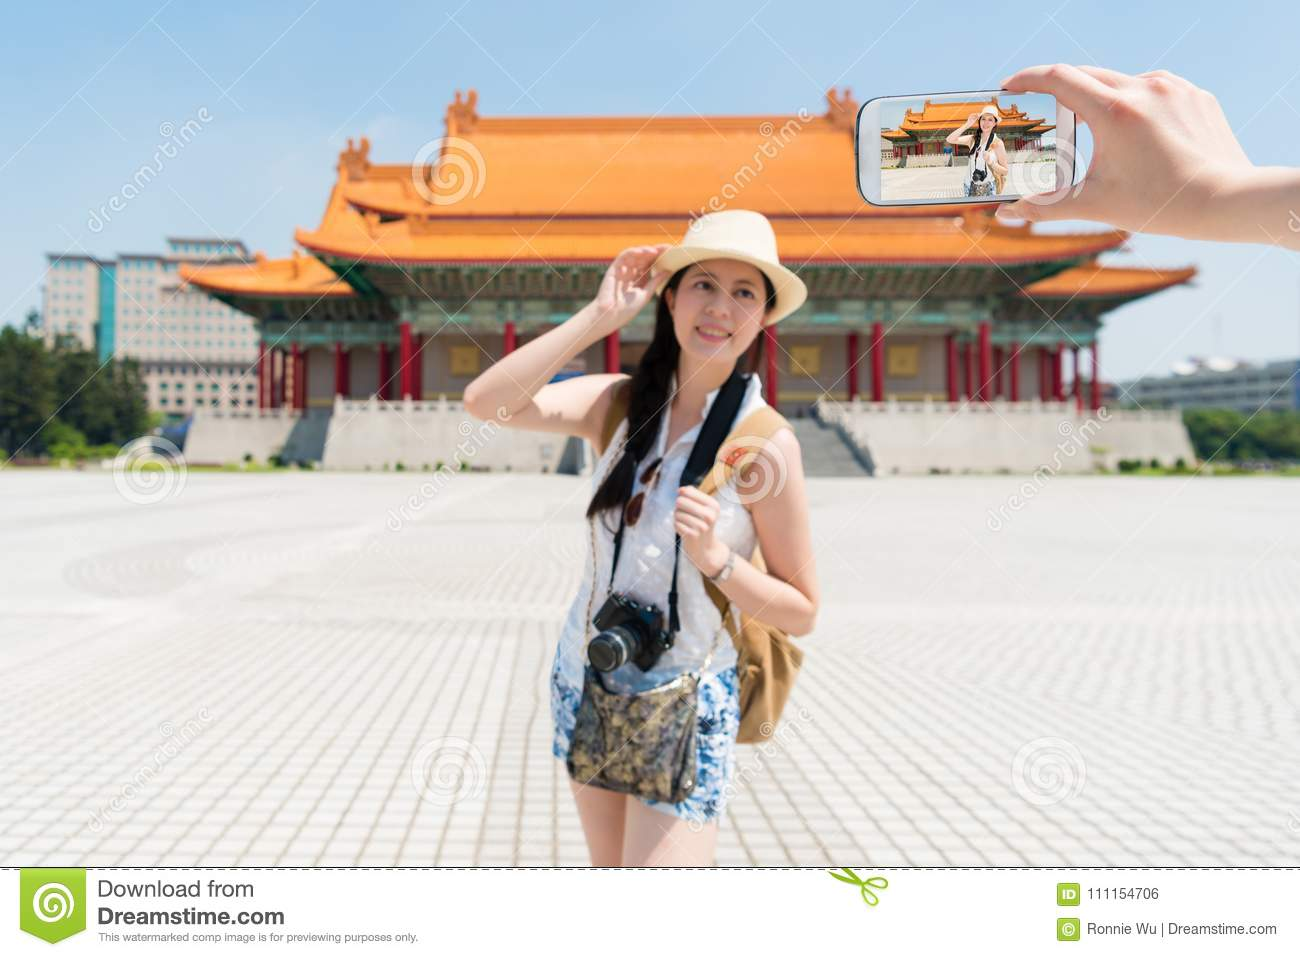 Modern Asian Teem Taking Photos In Front Of Chiang Kai Shek Memorial Hall Joyfully Standing Like A Model Wearing Short Clothes On A Side View